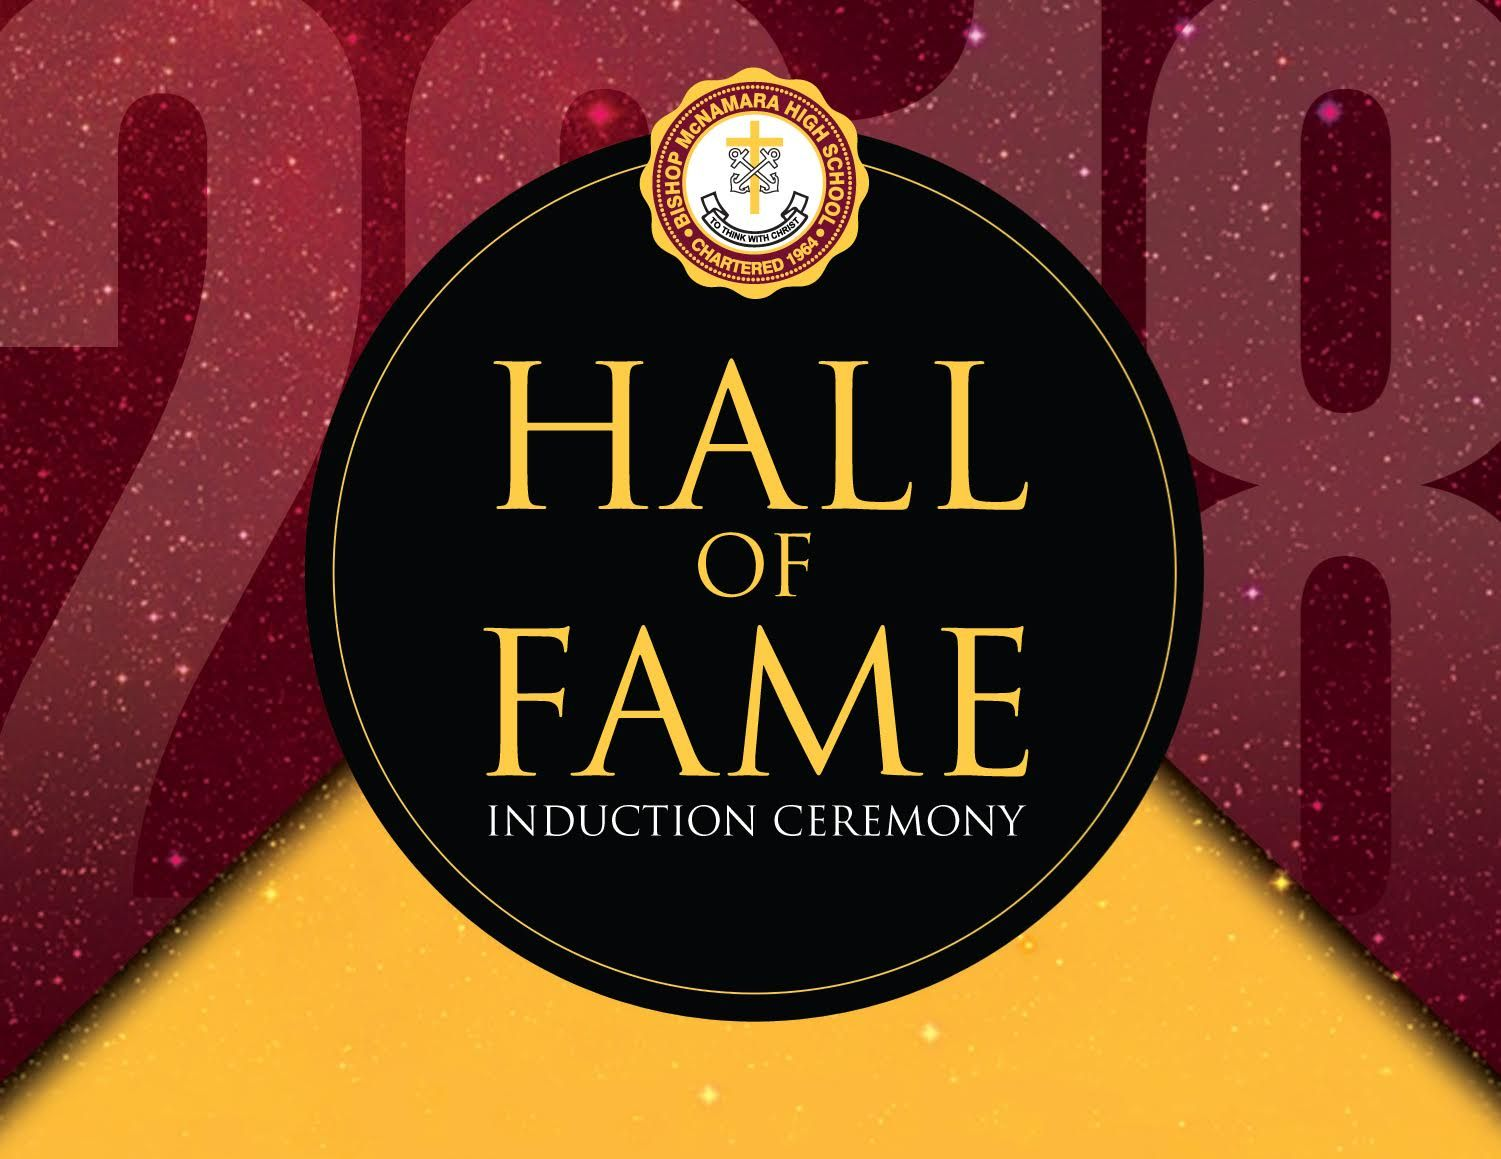 Hall of Fame Induction Ceremony